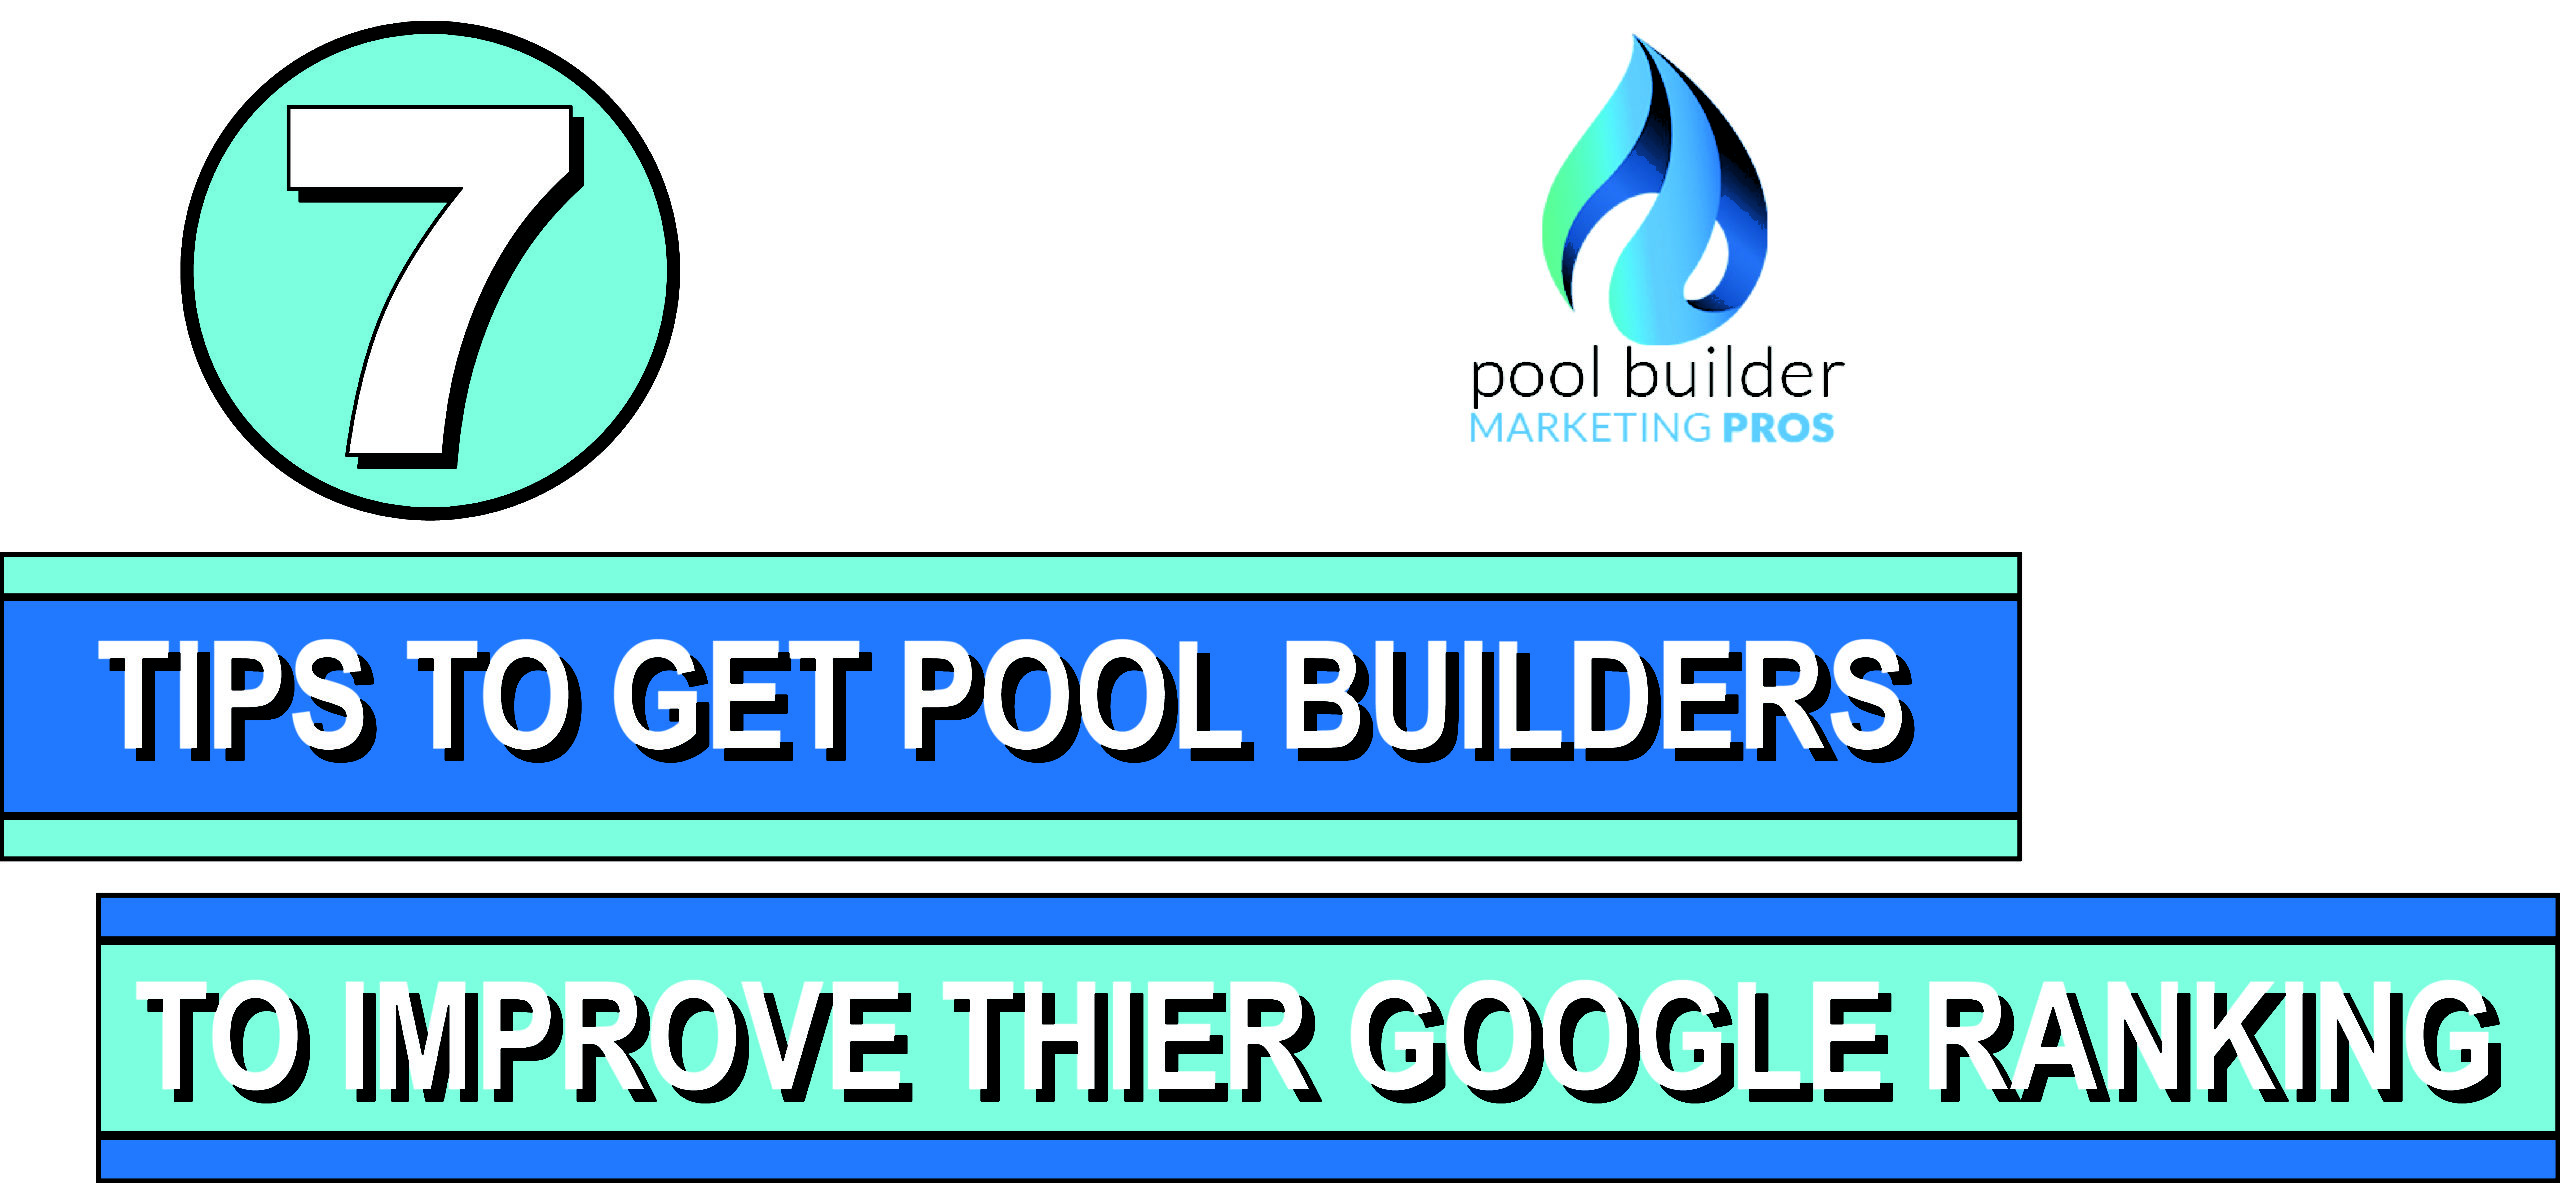 higher search engine rankings for pool builders.